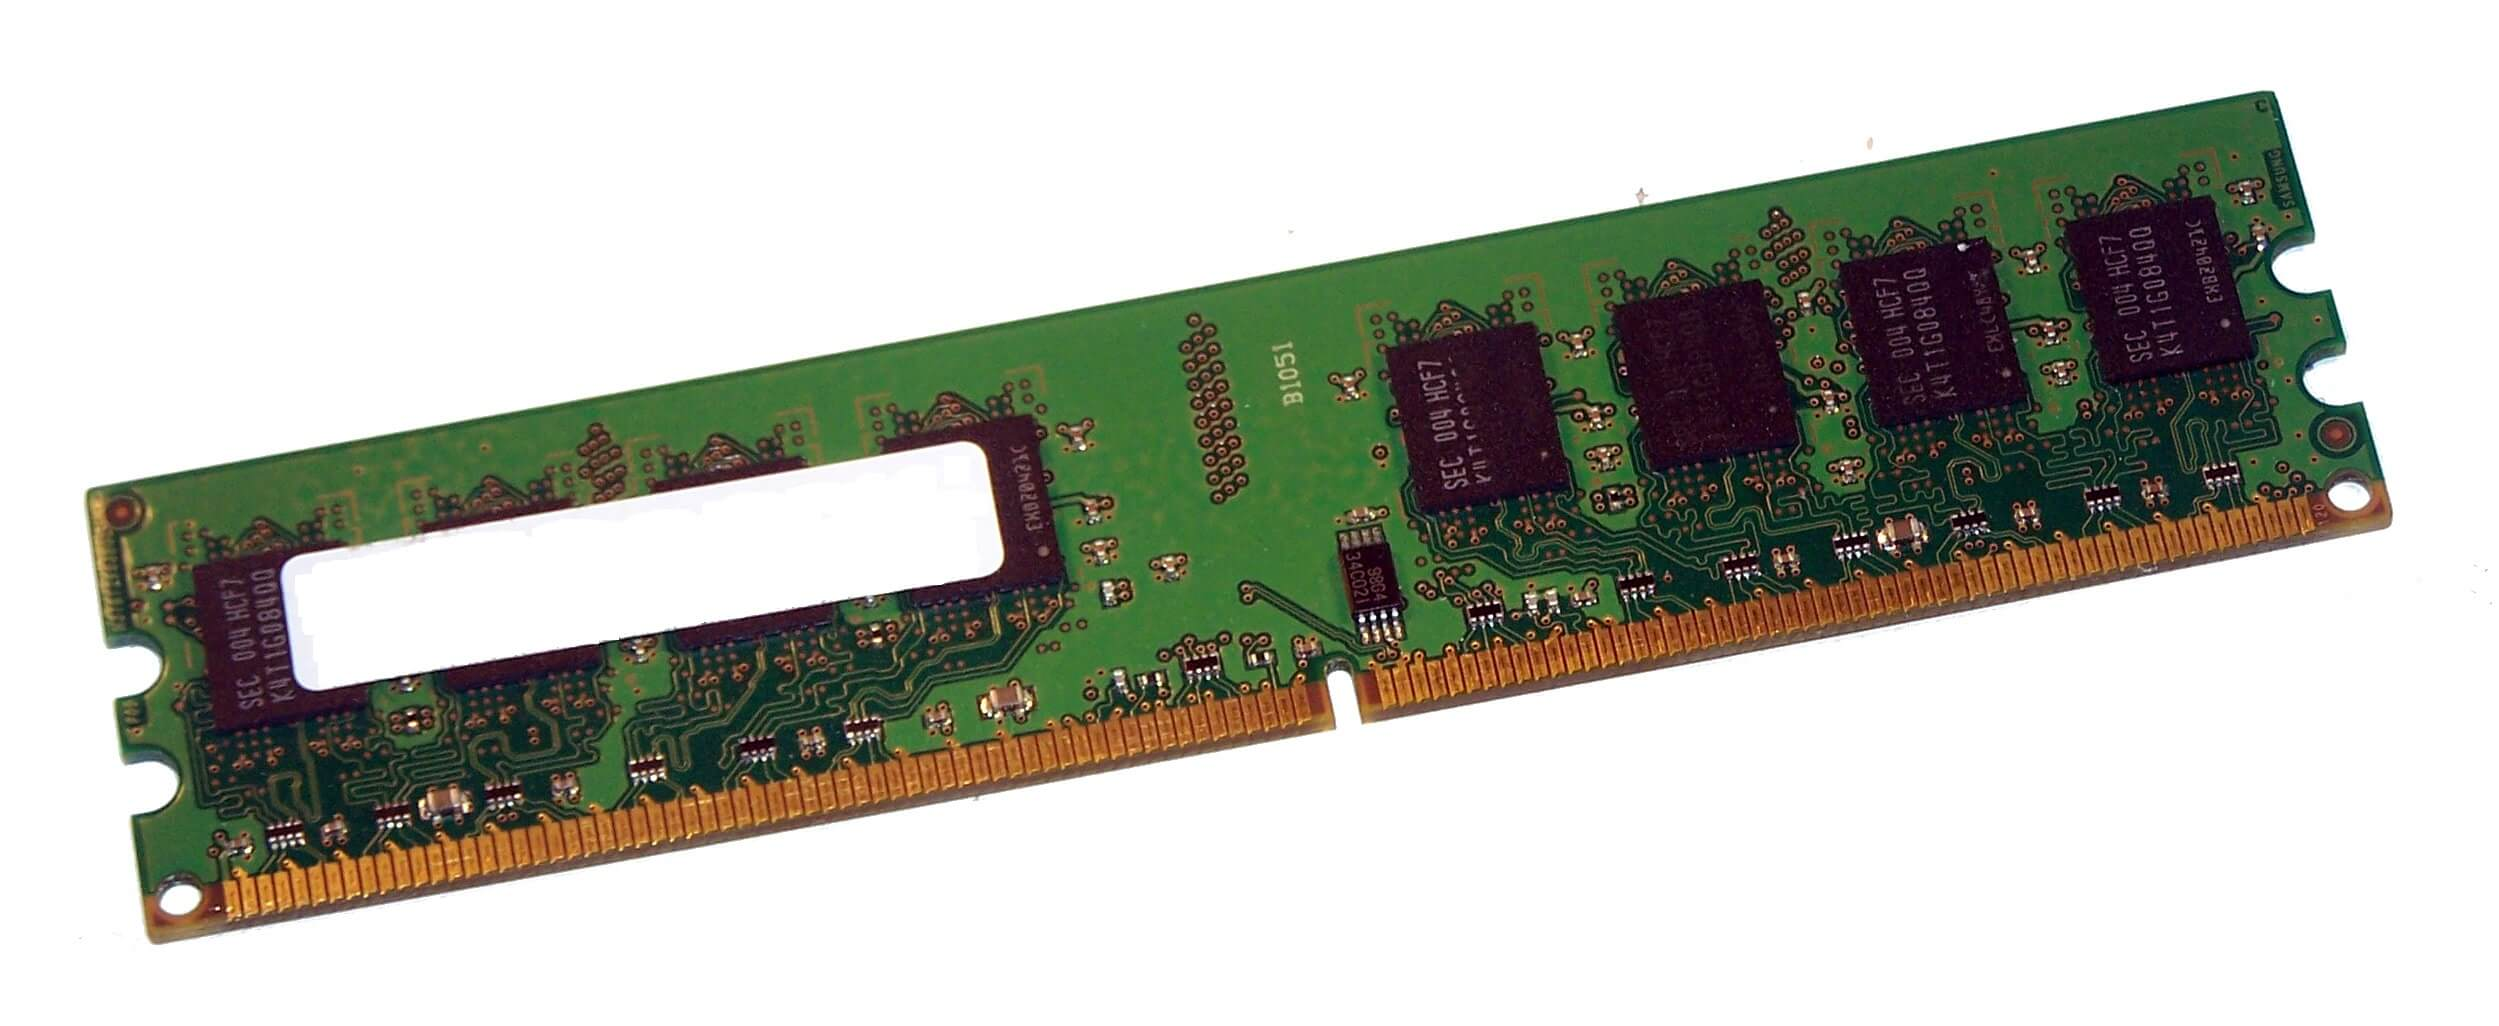 PAMIĘĆ DDR2 512MB 533MHz DO PC